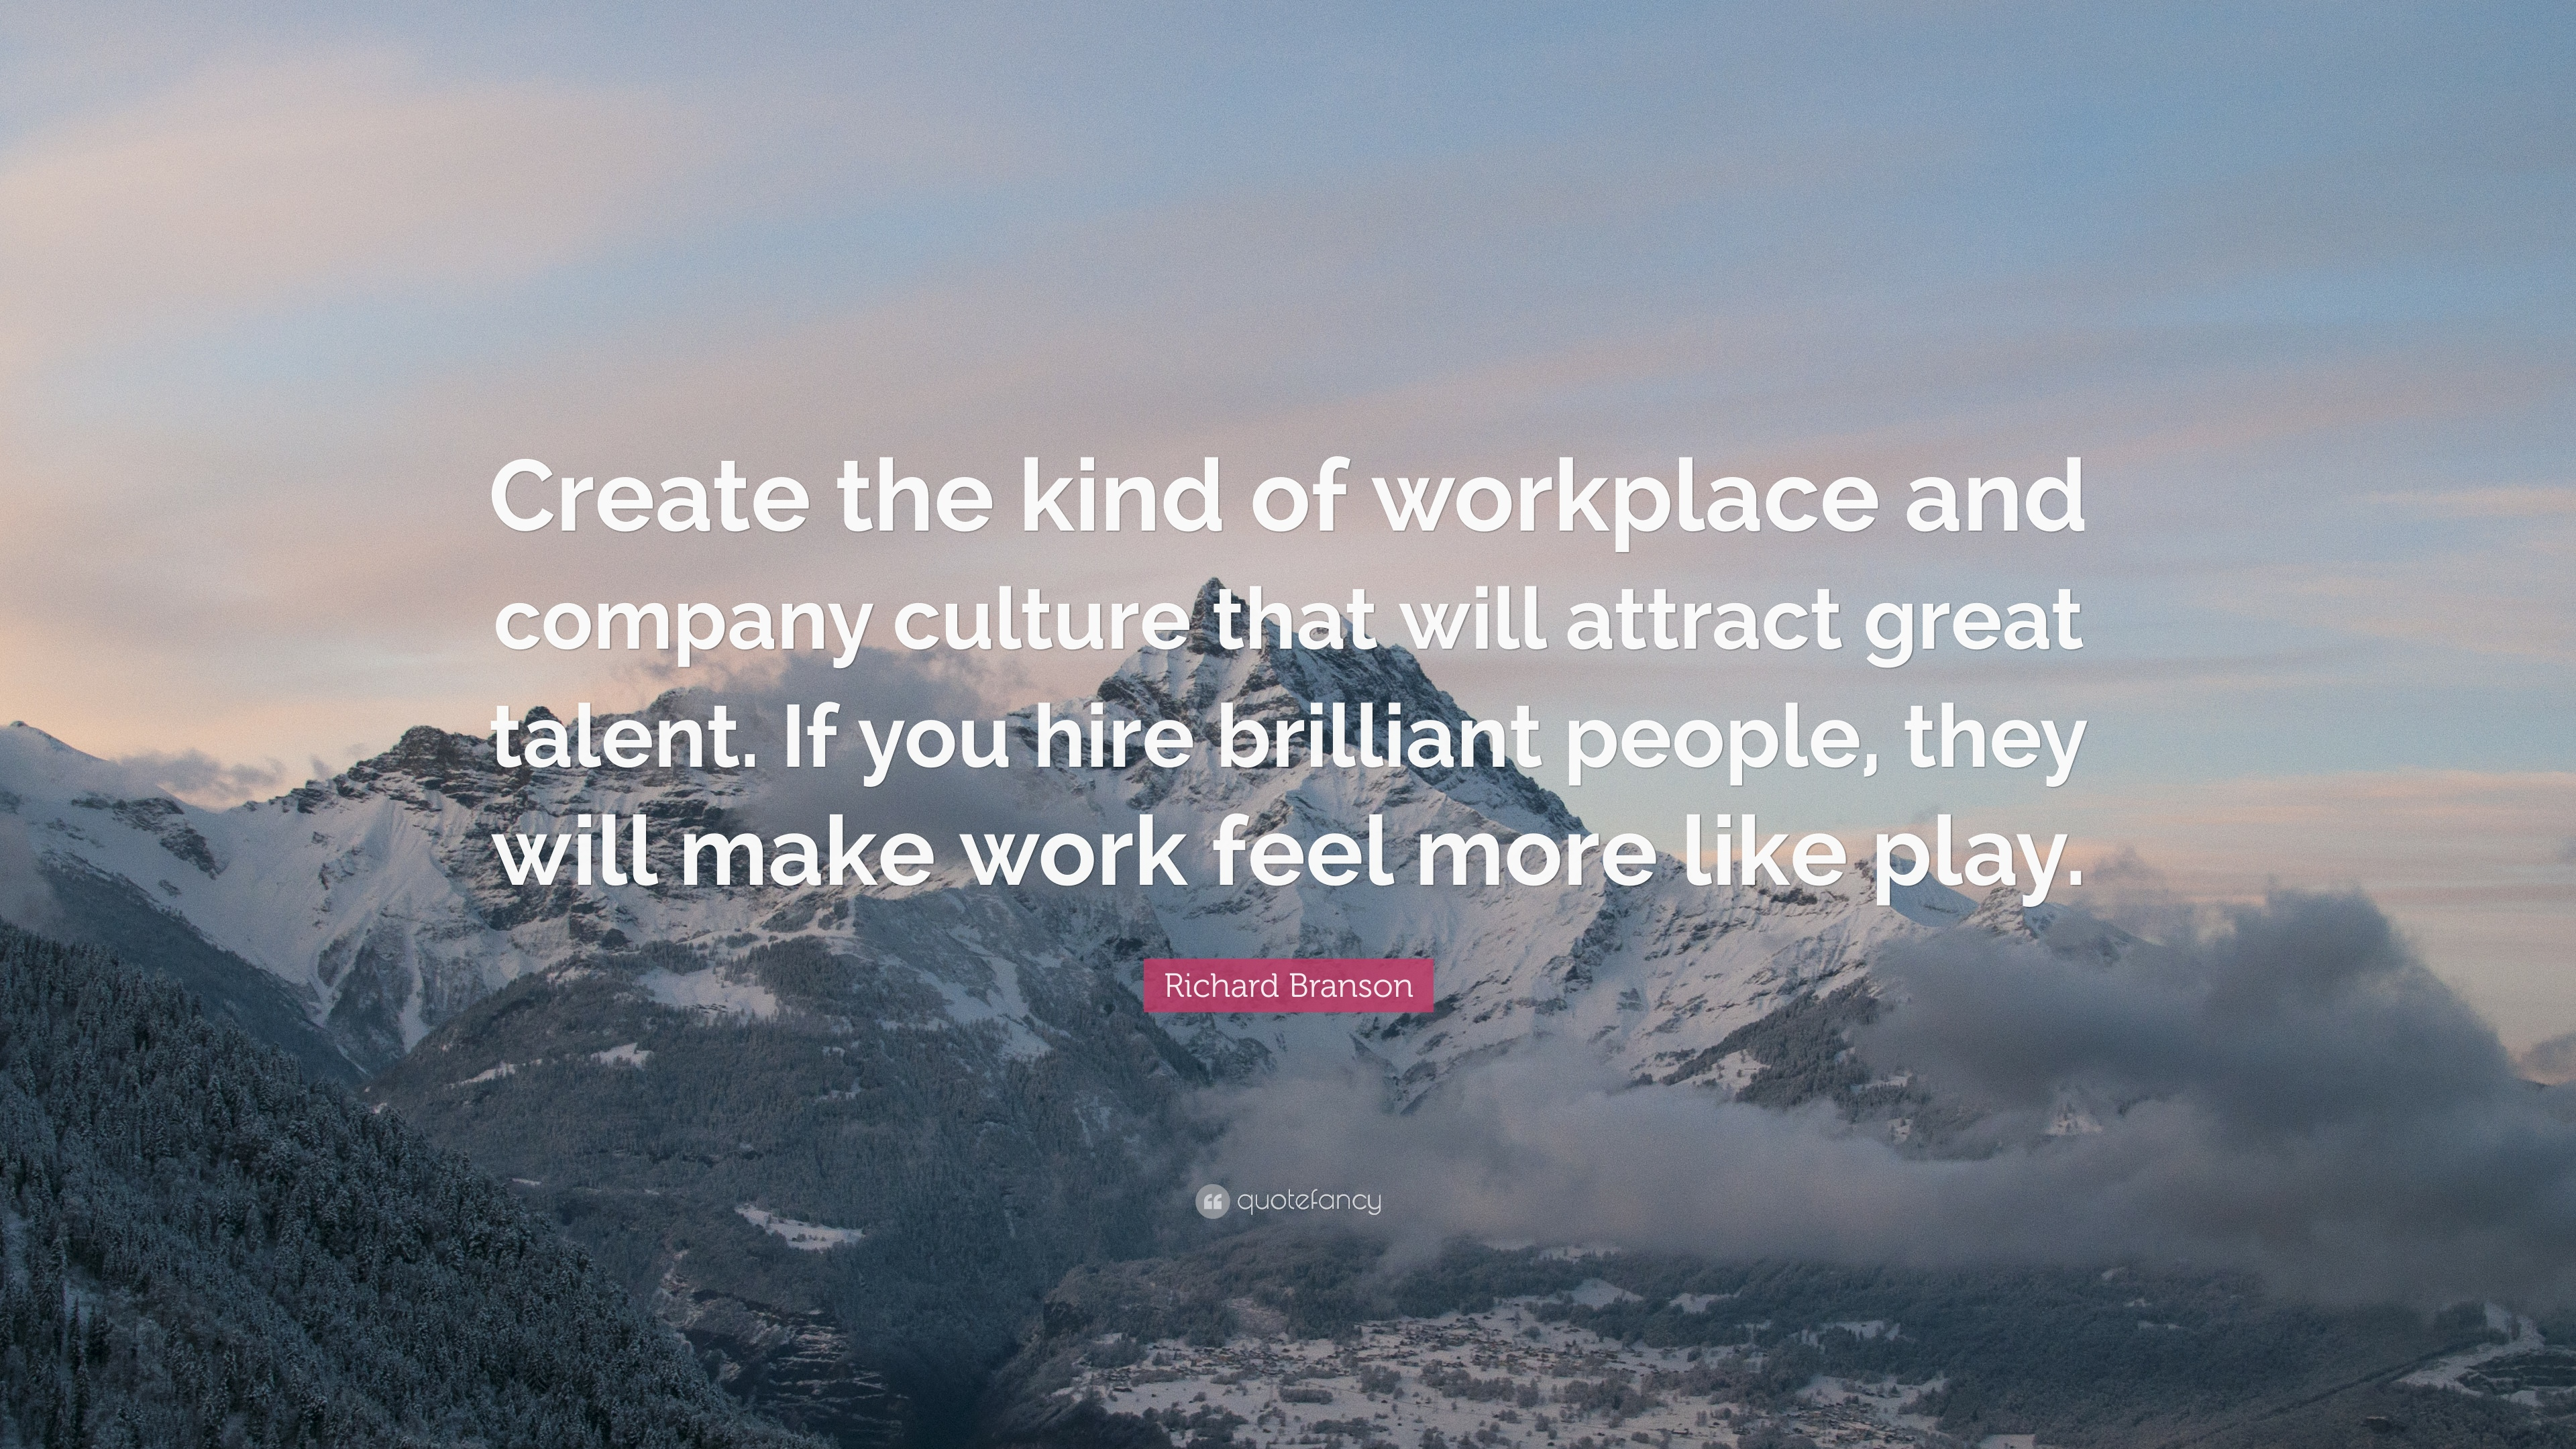 Gary Vaynerchuk Quotes Wallpaper Richard Branson Quote Create The Kind Of Workplace And